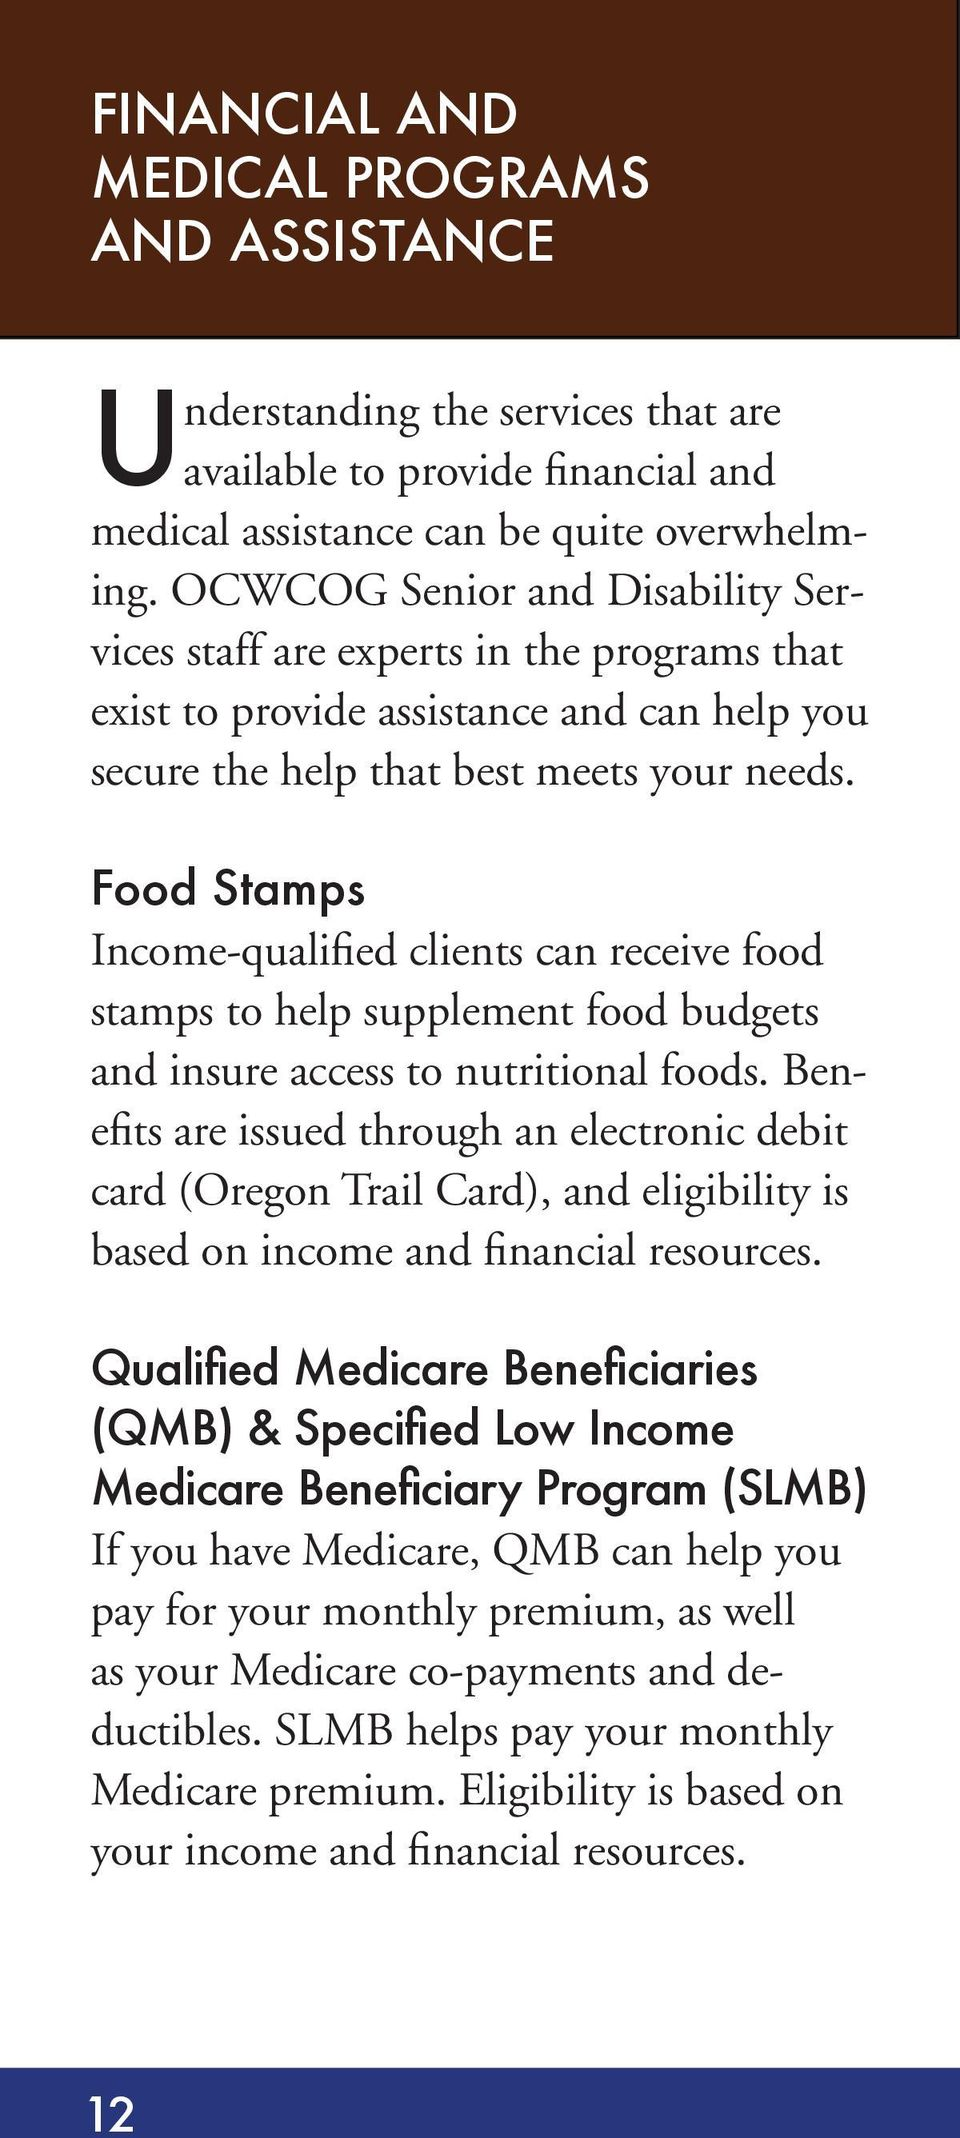 Food Stamps Income-qualified clients can receive food stamps to help supplement food budgets and insure access to nutritional foods.